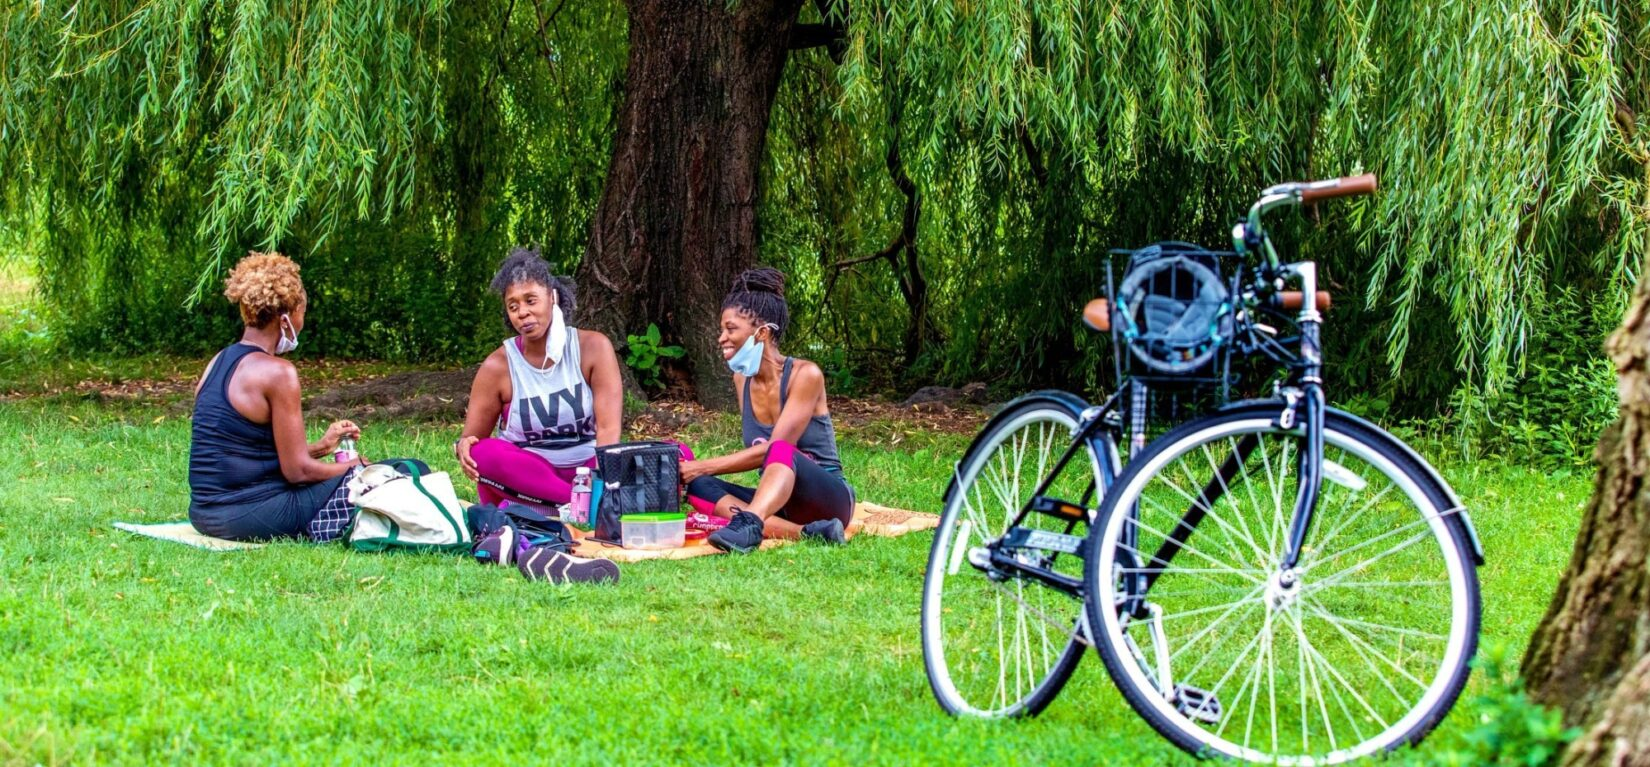 Three women enjoy a picnic on a blanket on Cedar Hill, with a parked bicycle in the foreground.